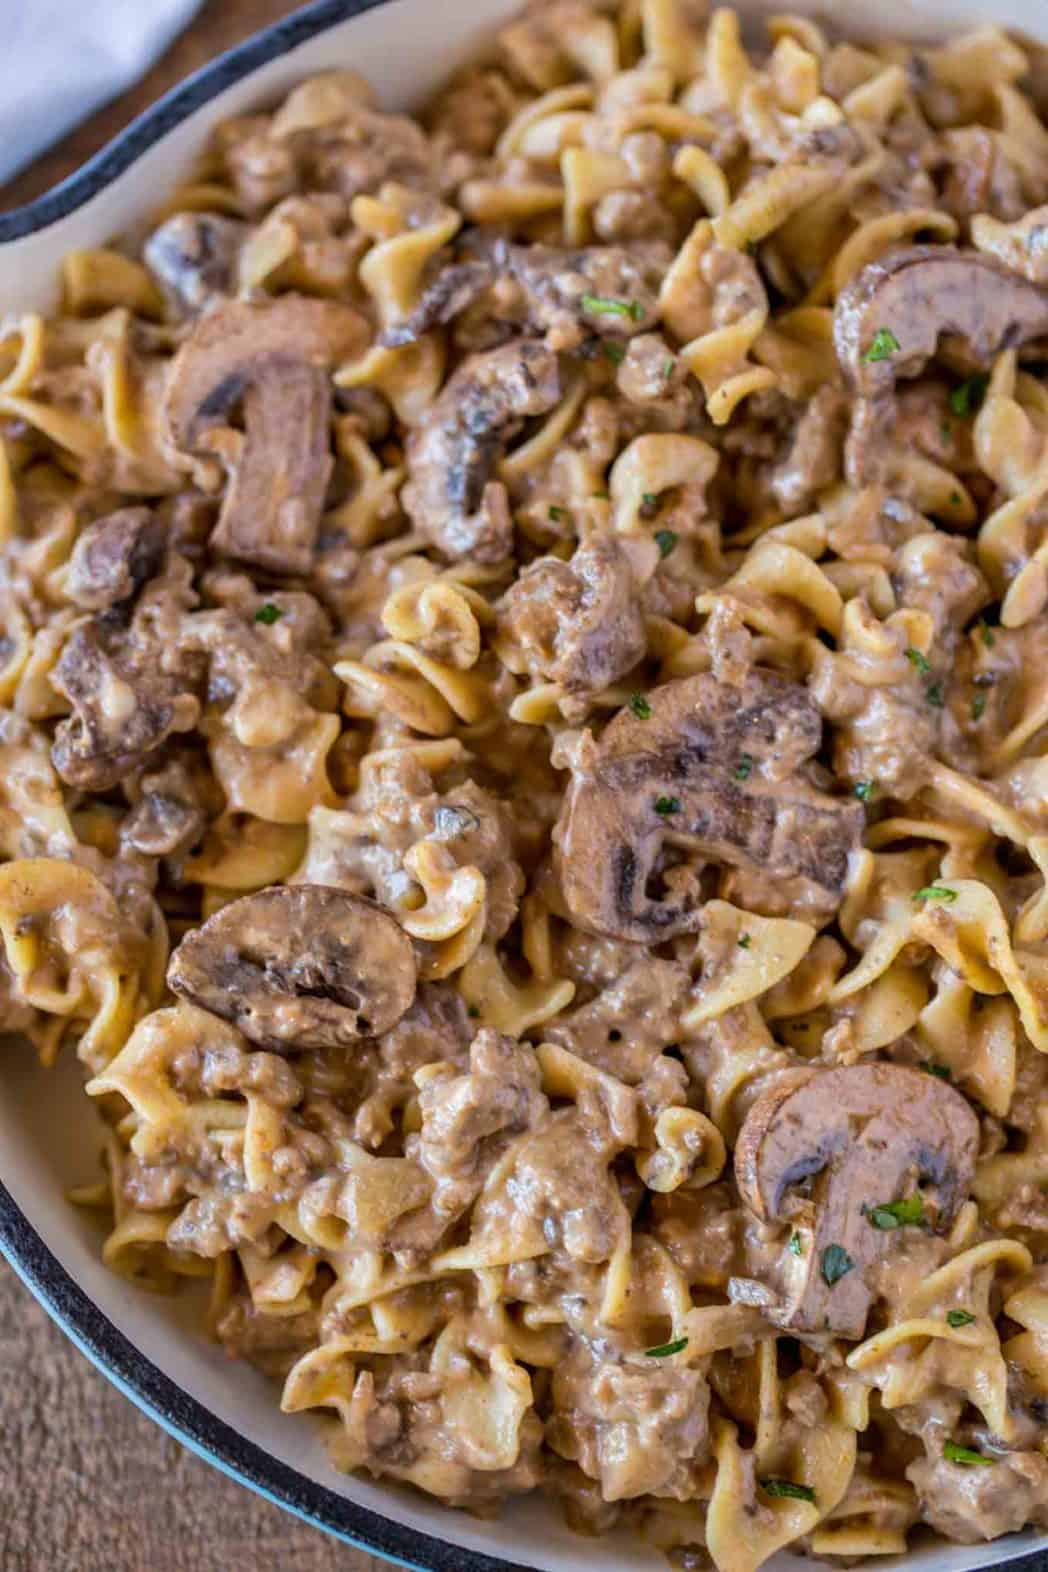 Recipes With Ground Beef Lettuce Wrap: Ground Beef Stroganoff